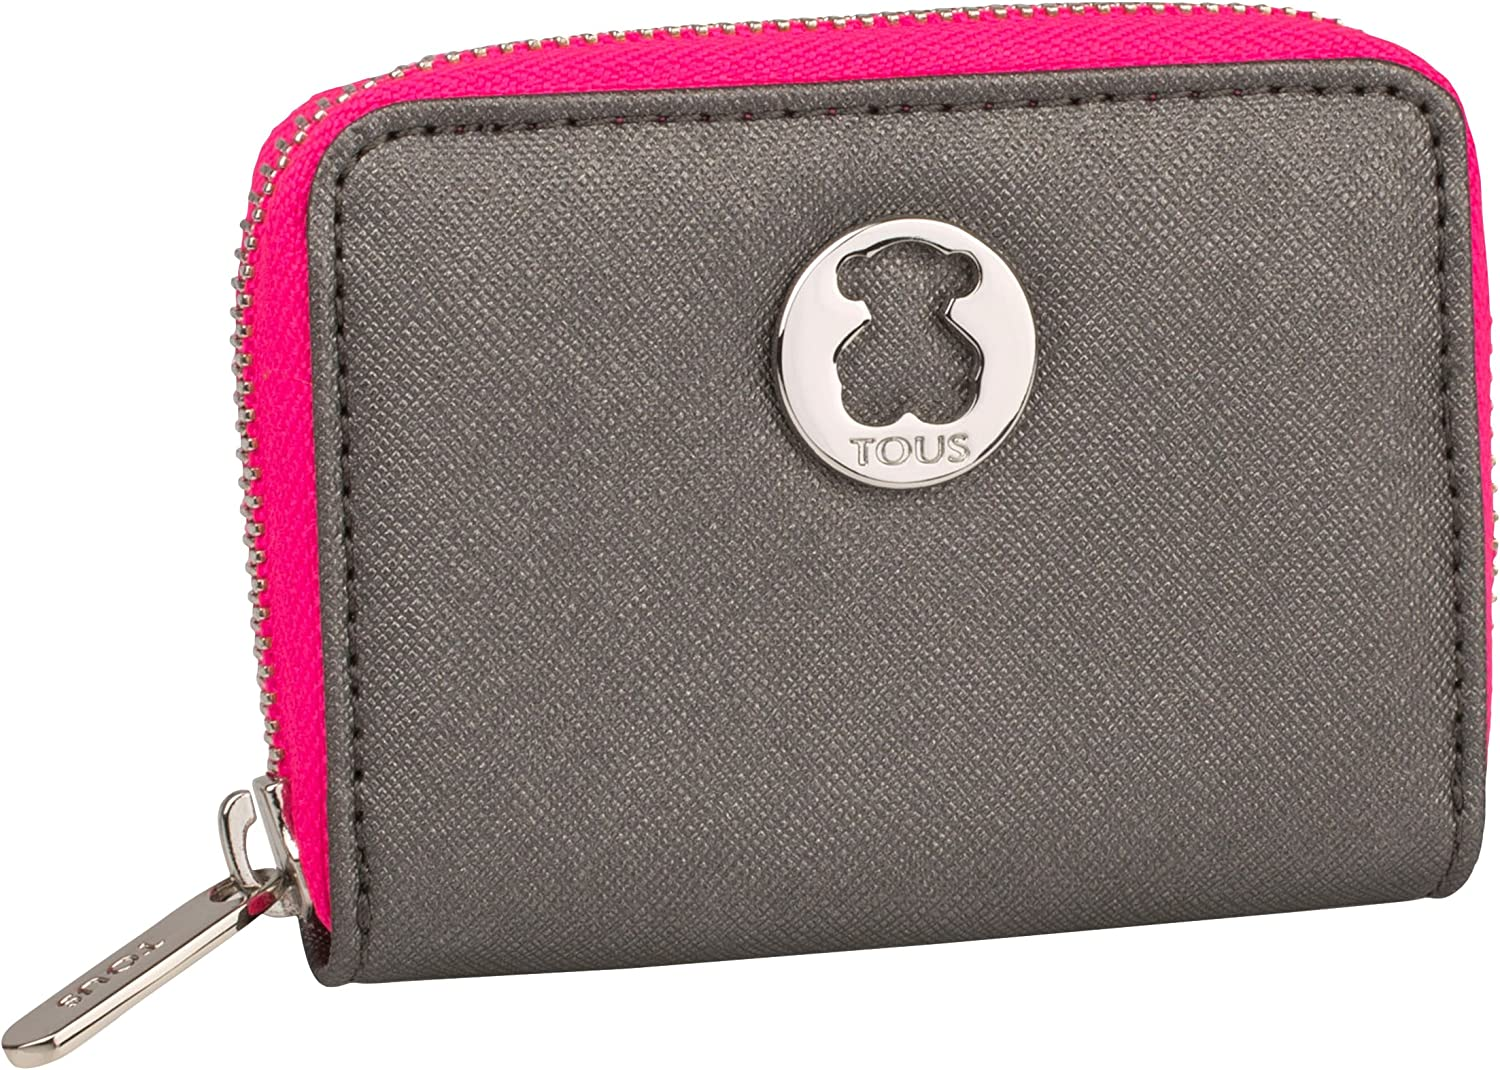 Amazon.com: TOUS Dubai Saffiano - Cartera: Shoes